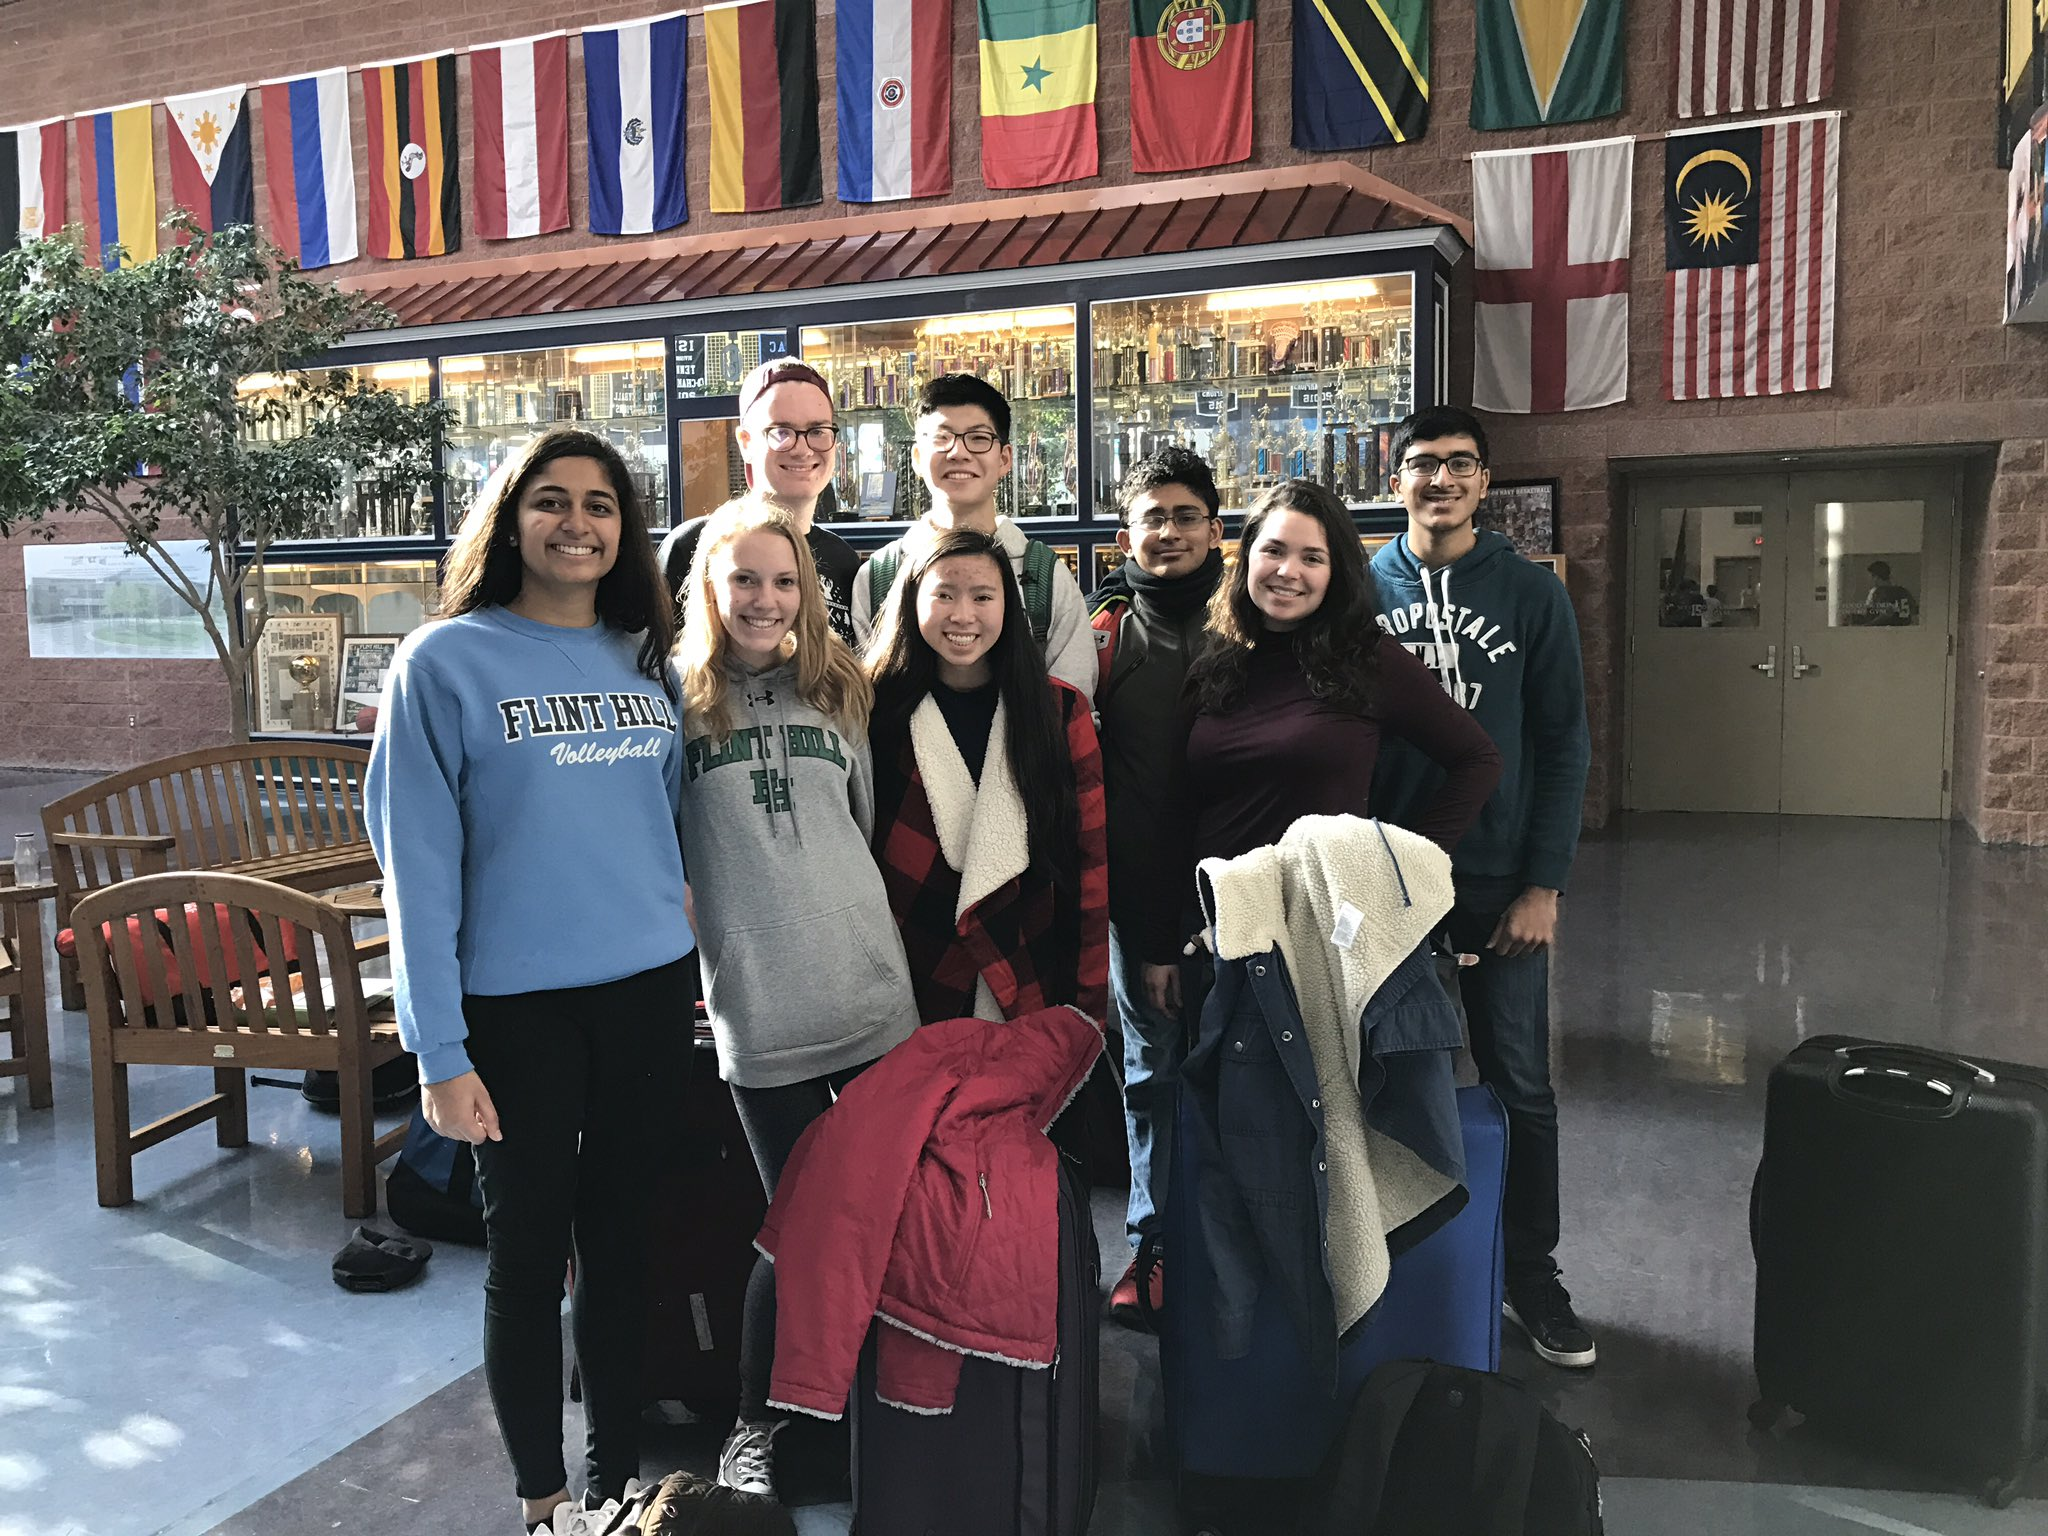 Spanish students ready to head to the airport on way  to Barcelona! ¡Buen viaje! #myflinthill https://t.co/tohJkOODtl